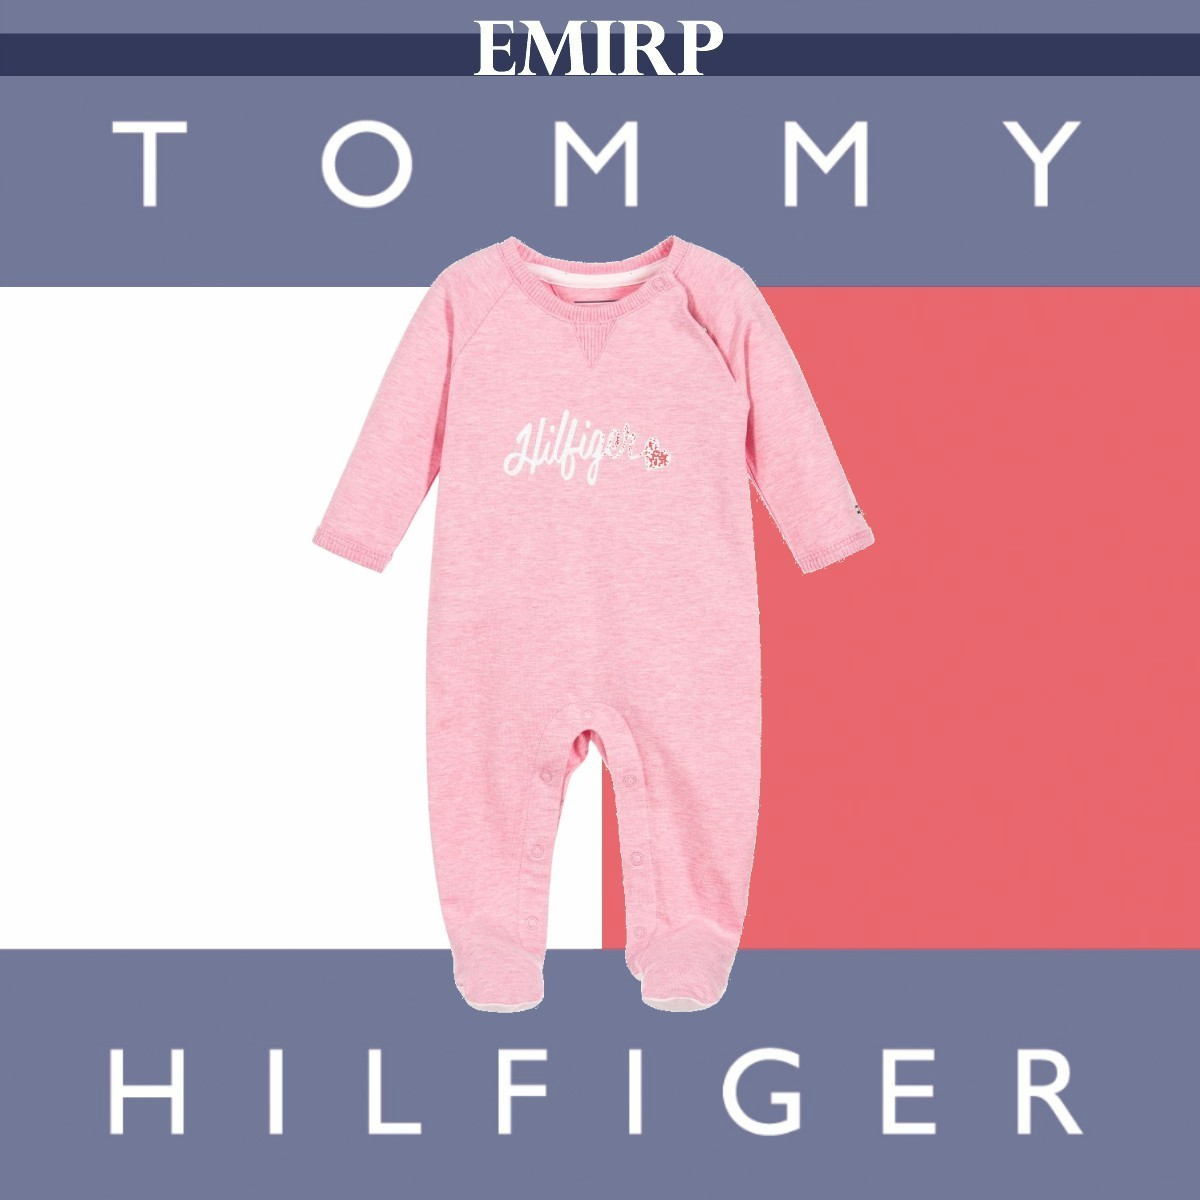 Tommy Hilfiger★ロゴロンパース★ピンク